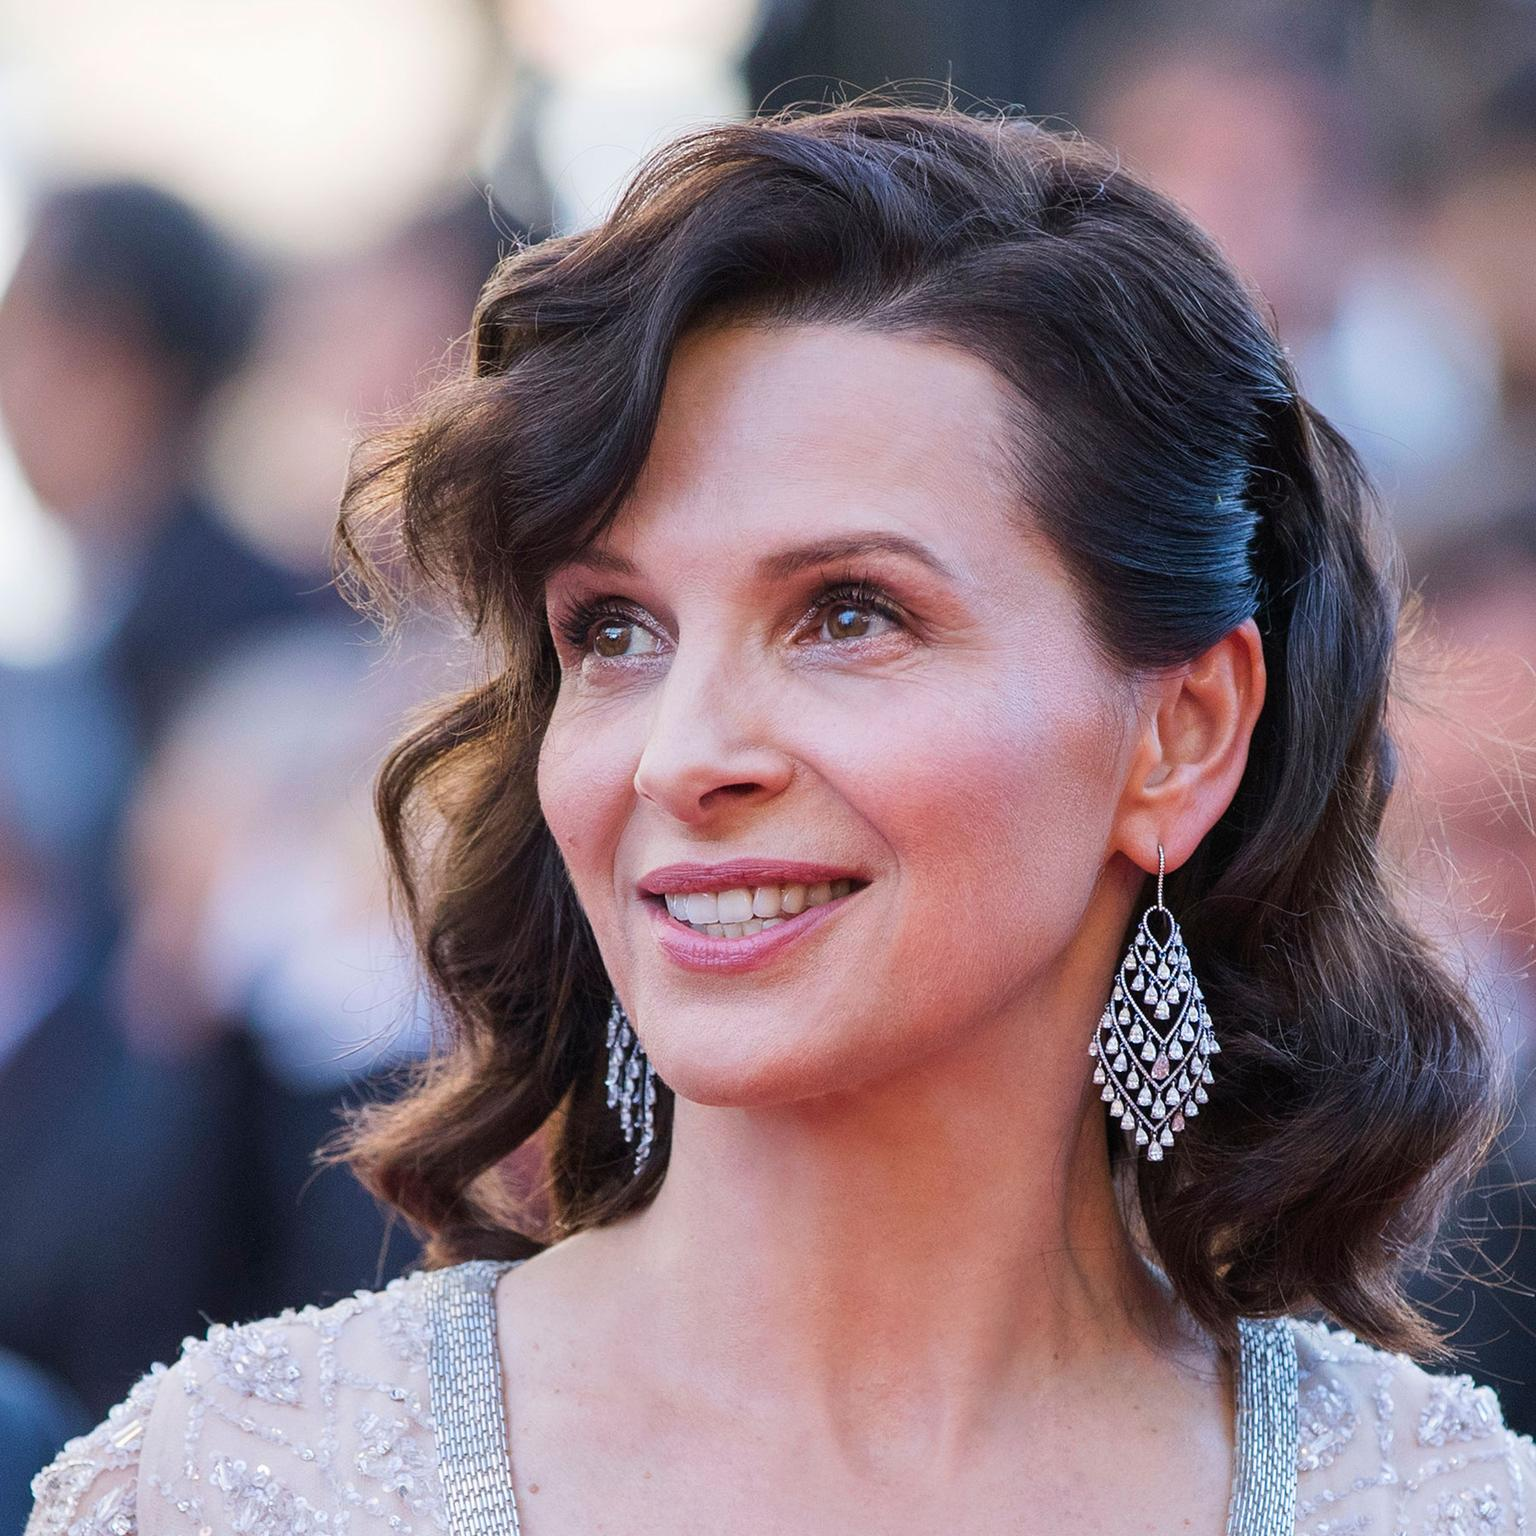 Cannes 2016 Day 10: Juliette Binoche in Chopard